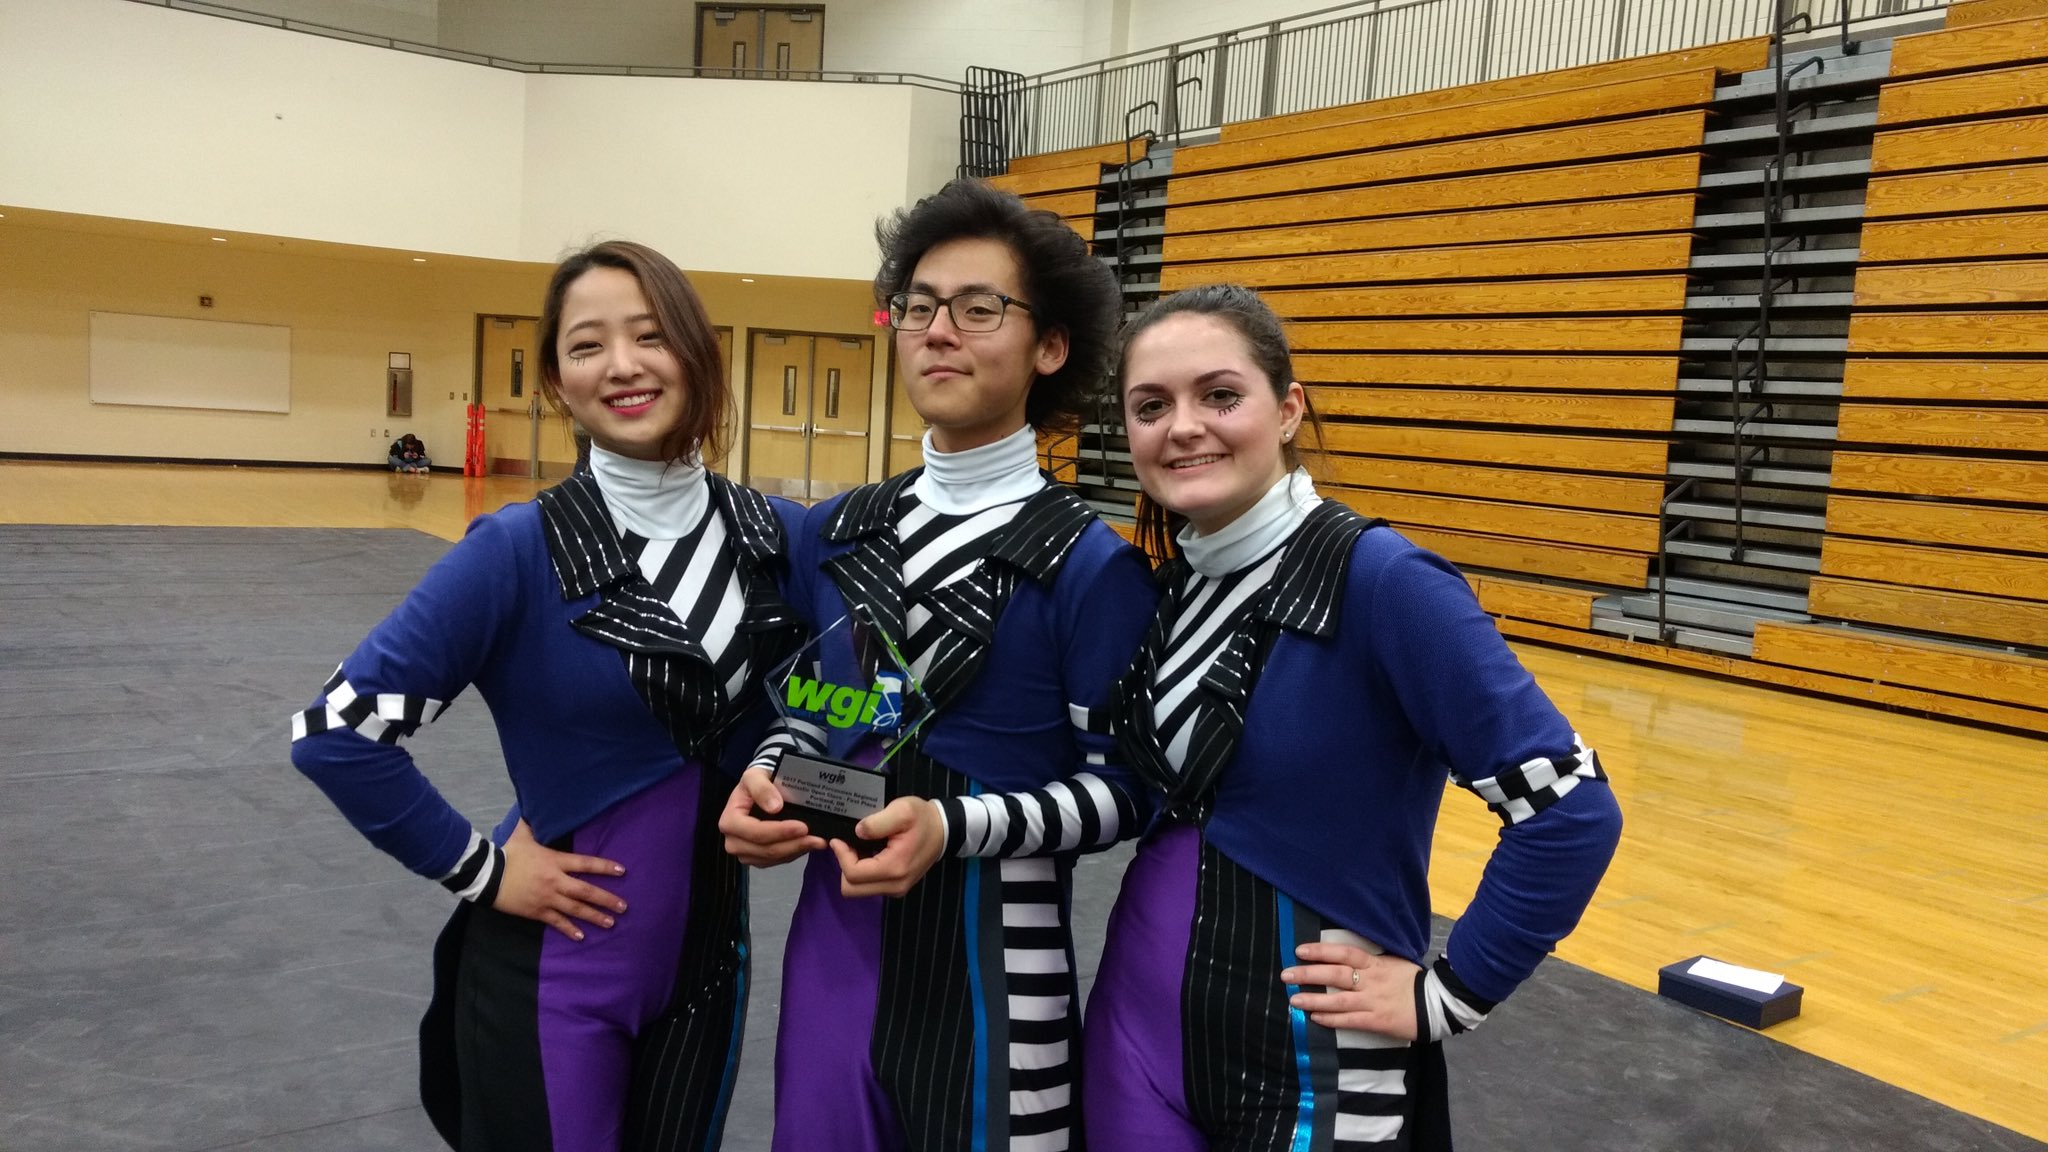 Senior Captains picking up the hardware at #wgiportland https://t.co/B5A43LLzAn